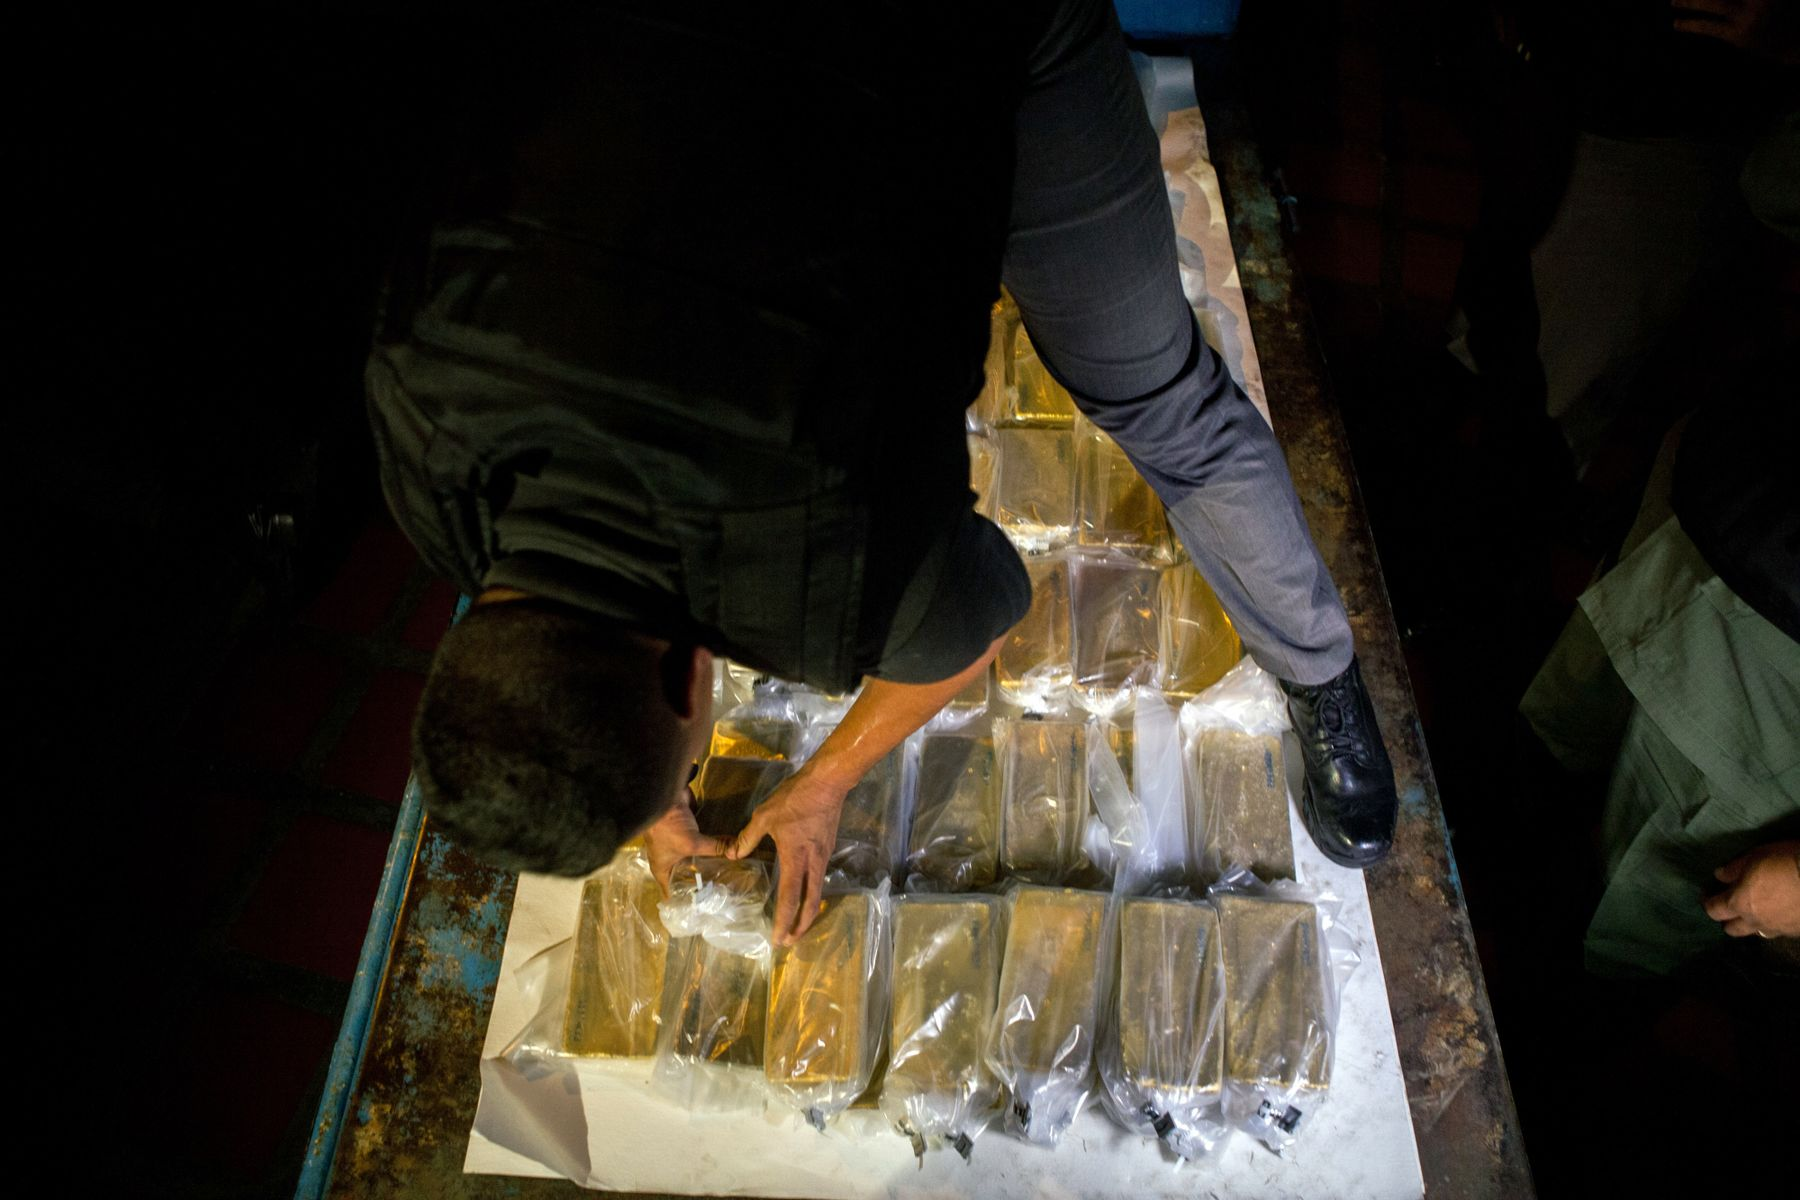 A member of a military transportation agency unload gold bars from a plane for transport to the Central Bank of Venezuela in Caracas.